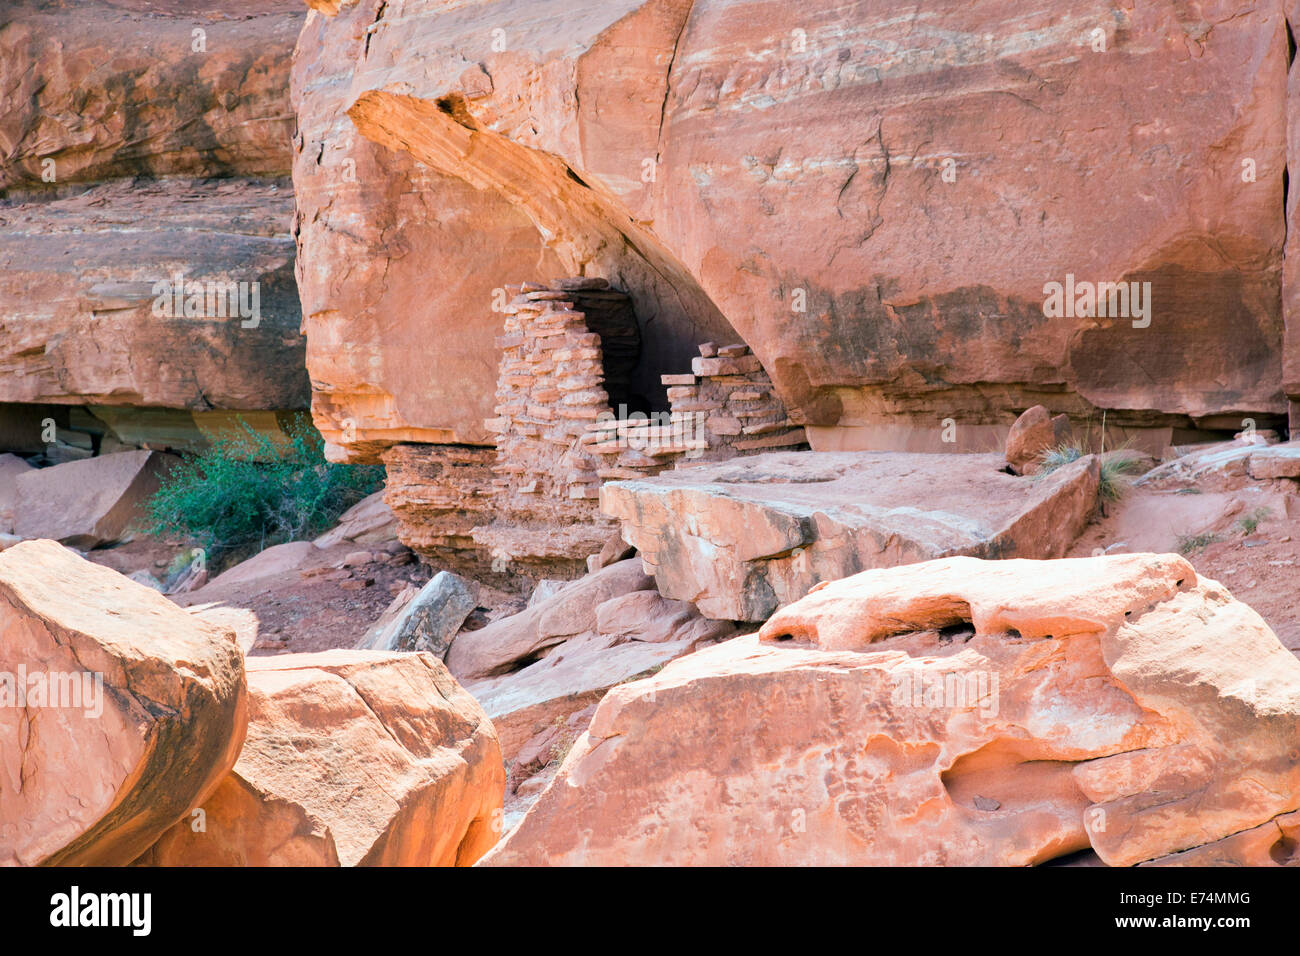 Canyonlands National Park, Utah - An ancient Anasazi granary on a cliff high above the Colorado River. - Stock Image